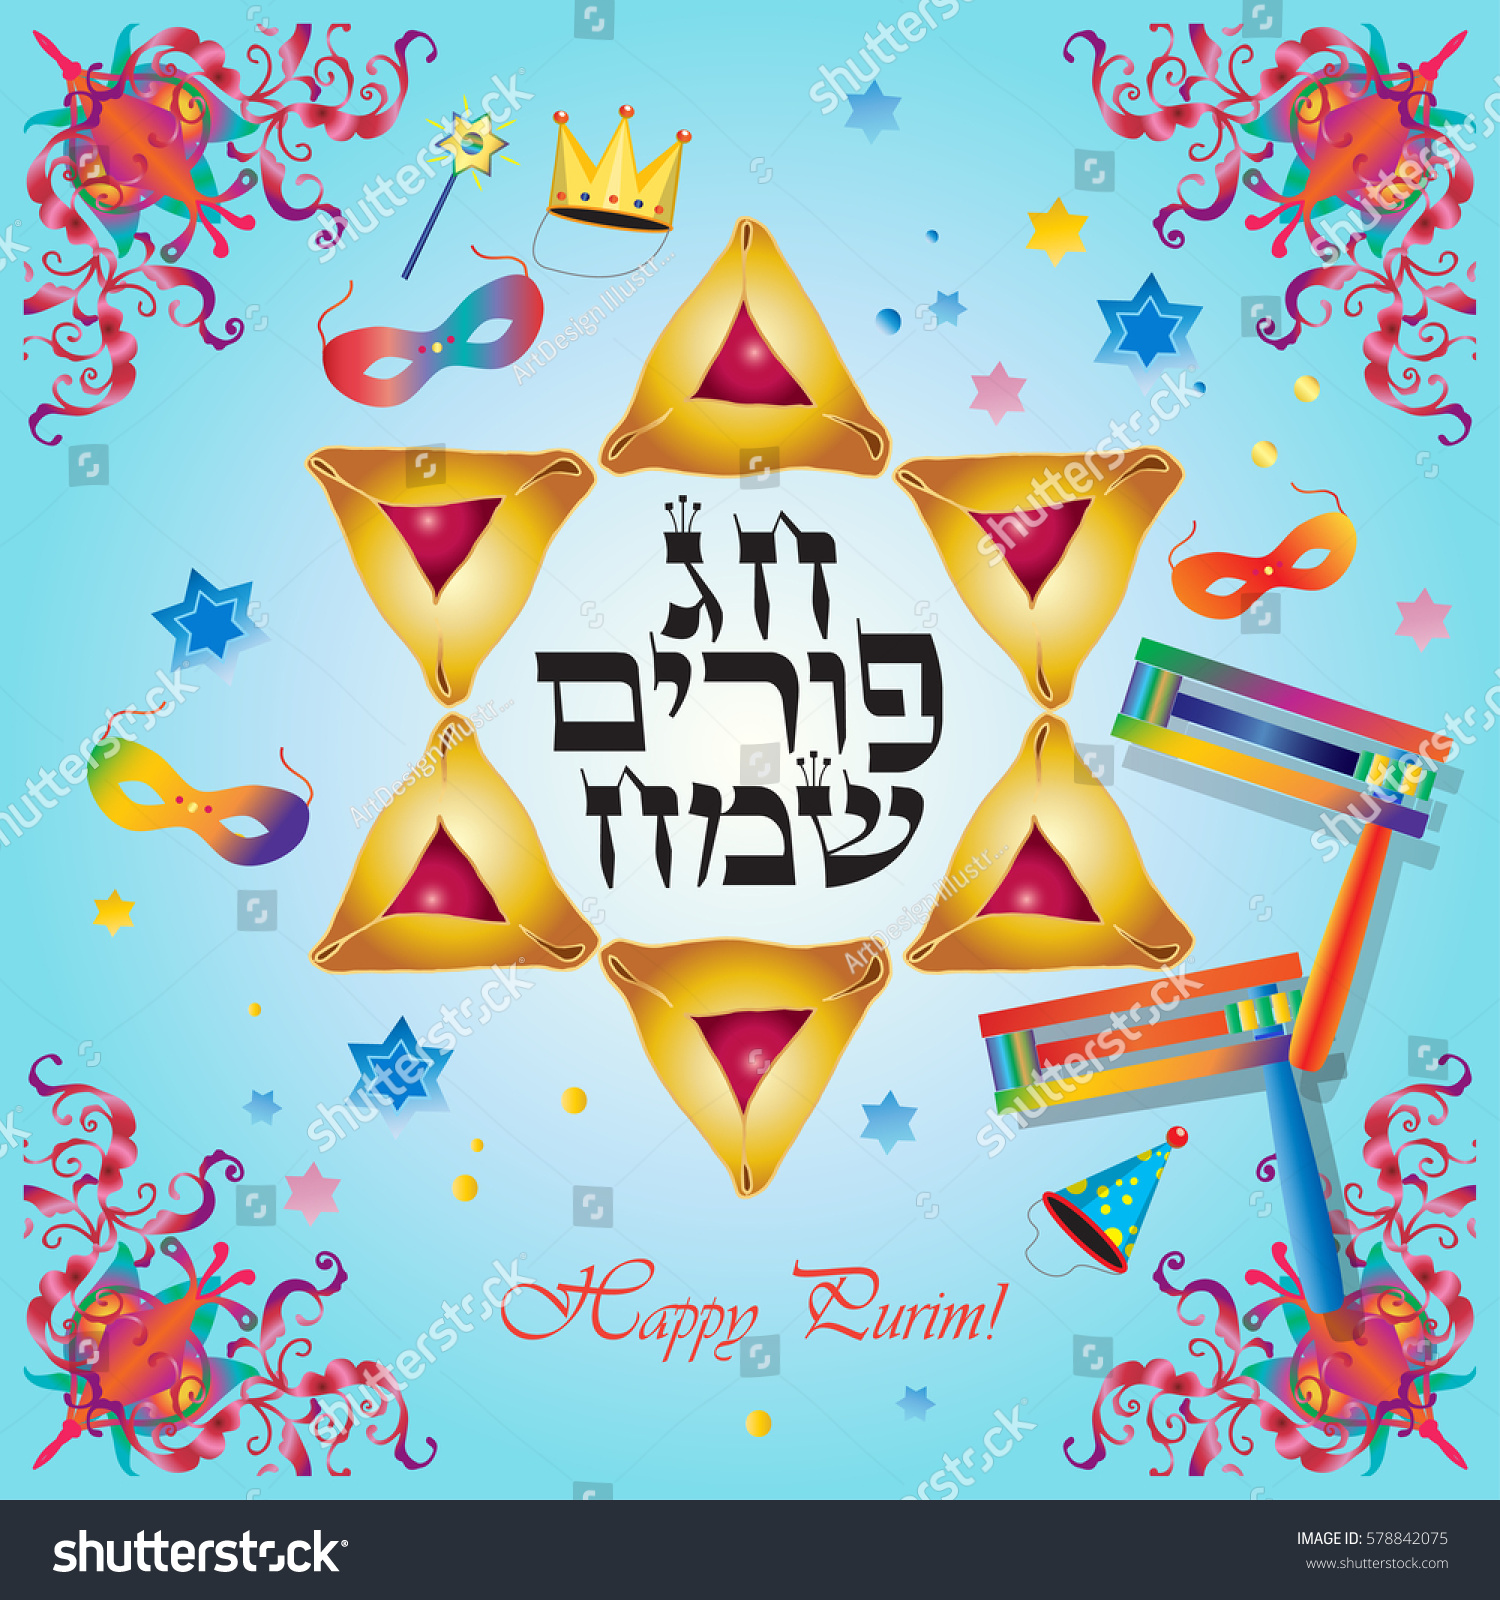 Purim Greeting Hebrew Image Collections Greetings Card Design Simple